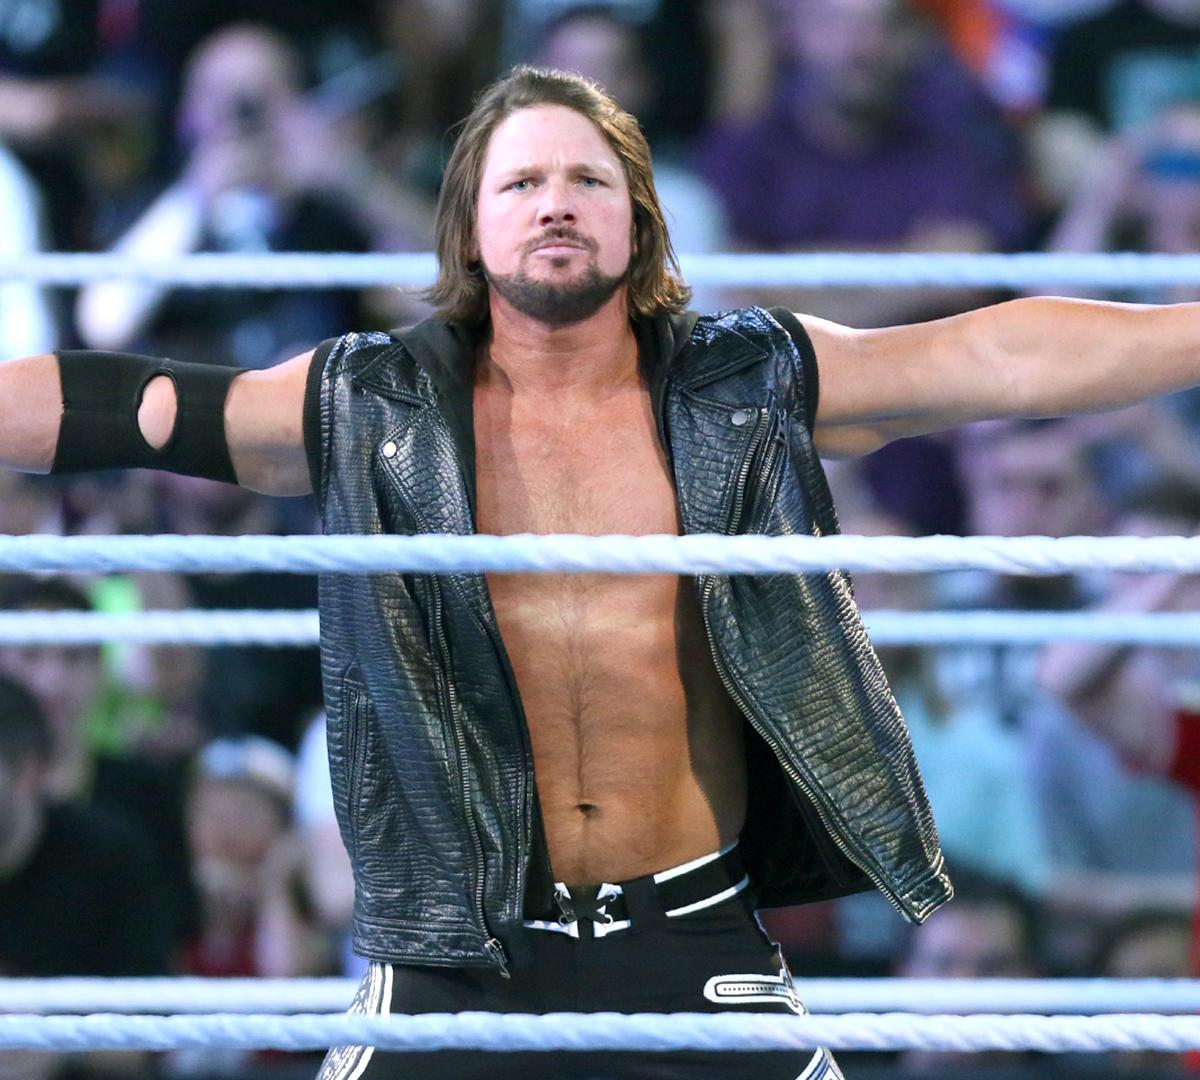 AJ Styles Must Be Utilized As A Top Draw After WWE Raw